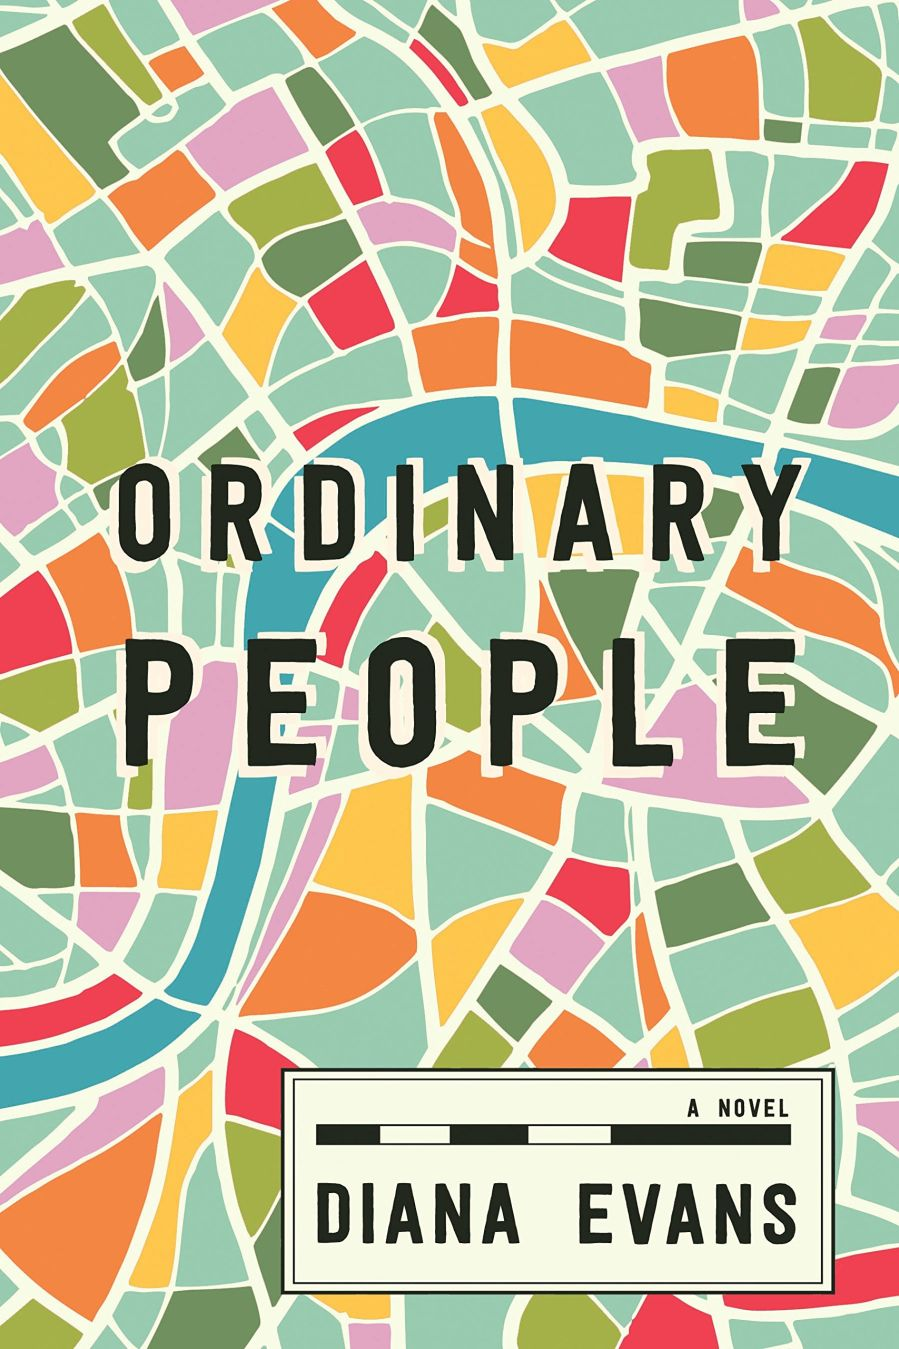 book cover of Ordinary People, by Diana Evans